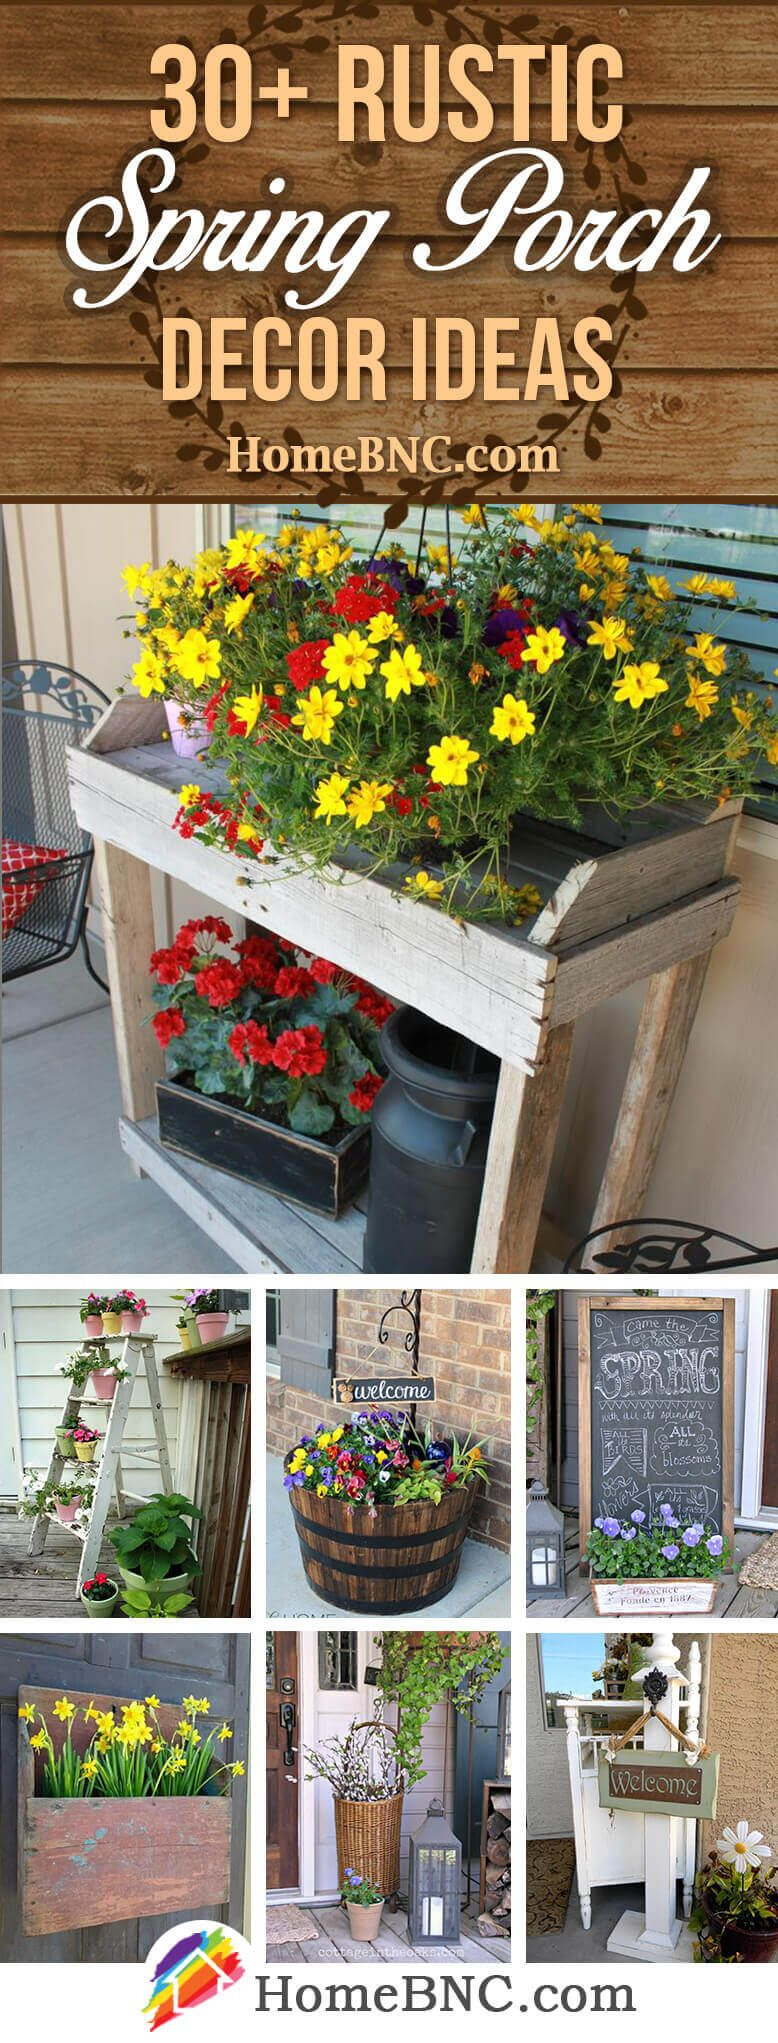 30+ Best Rustic Spring Porch Decor Ideas and Designs for 2019 #rusticporchideas